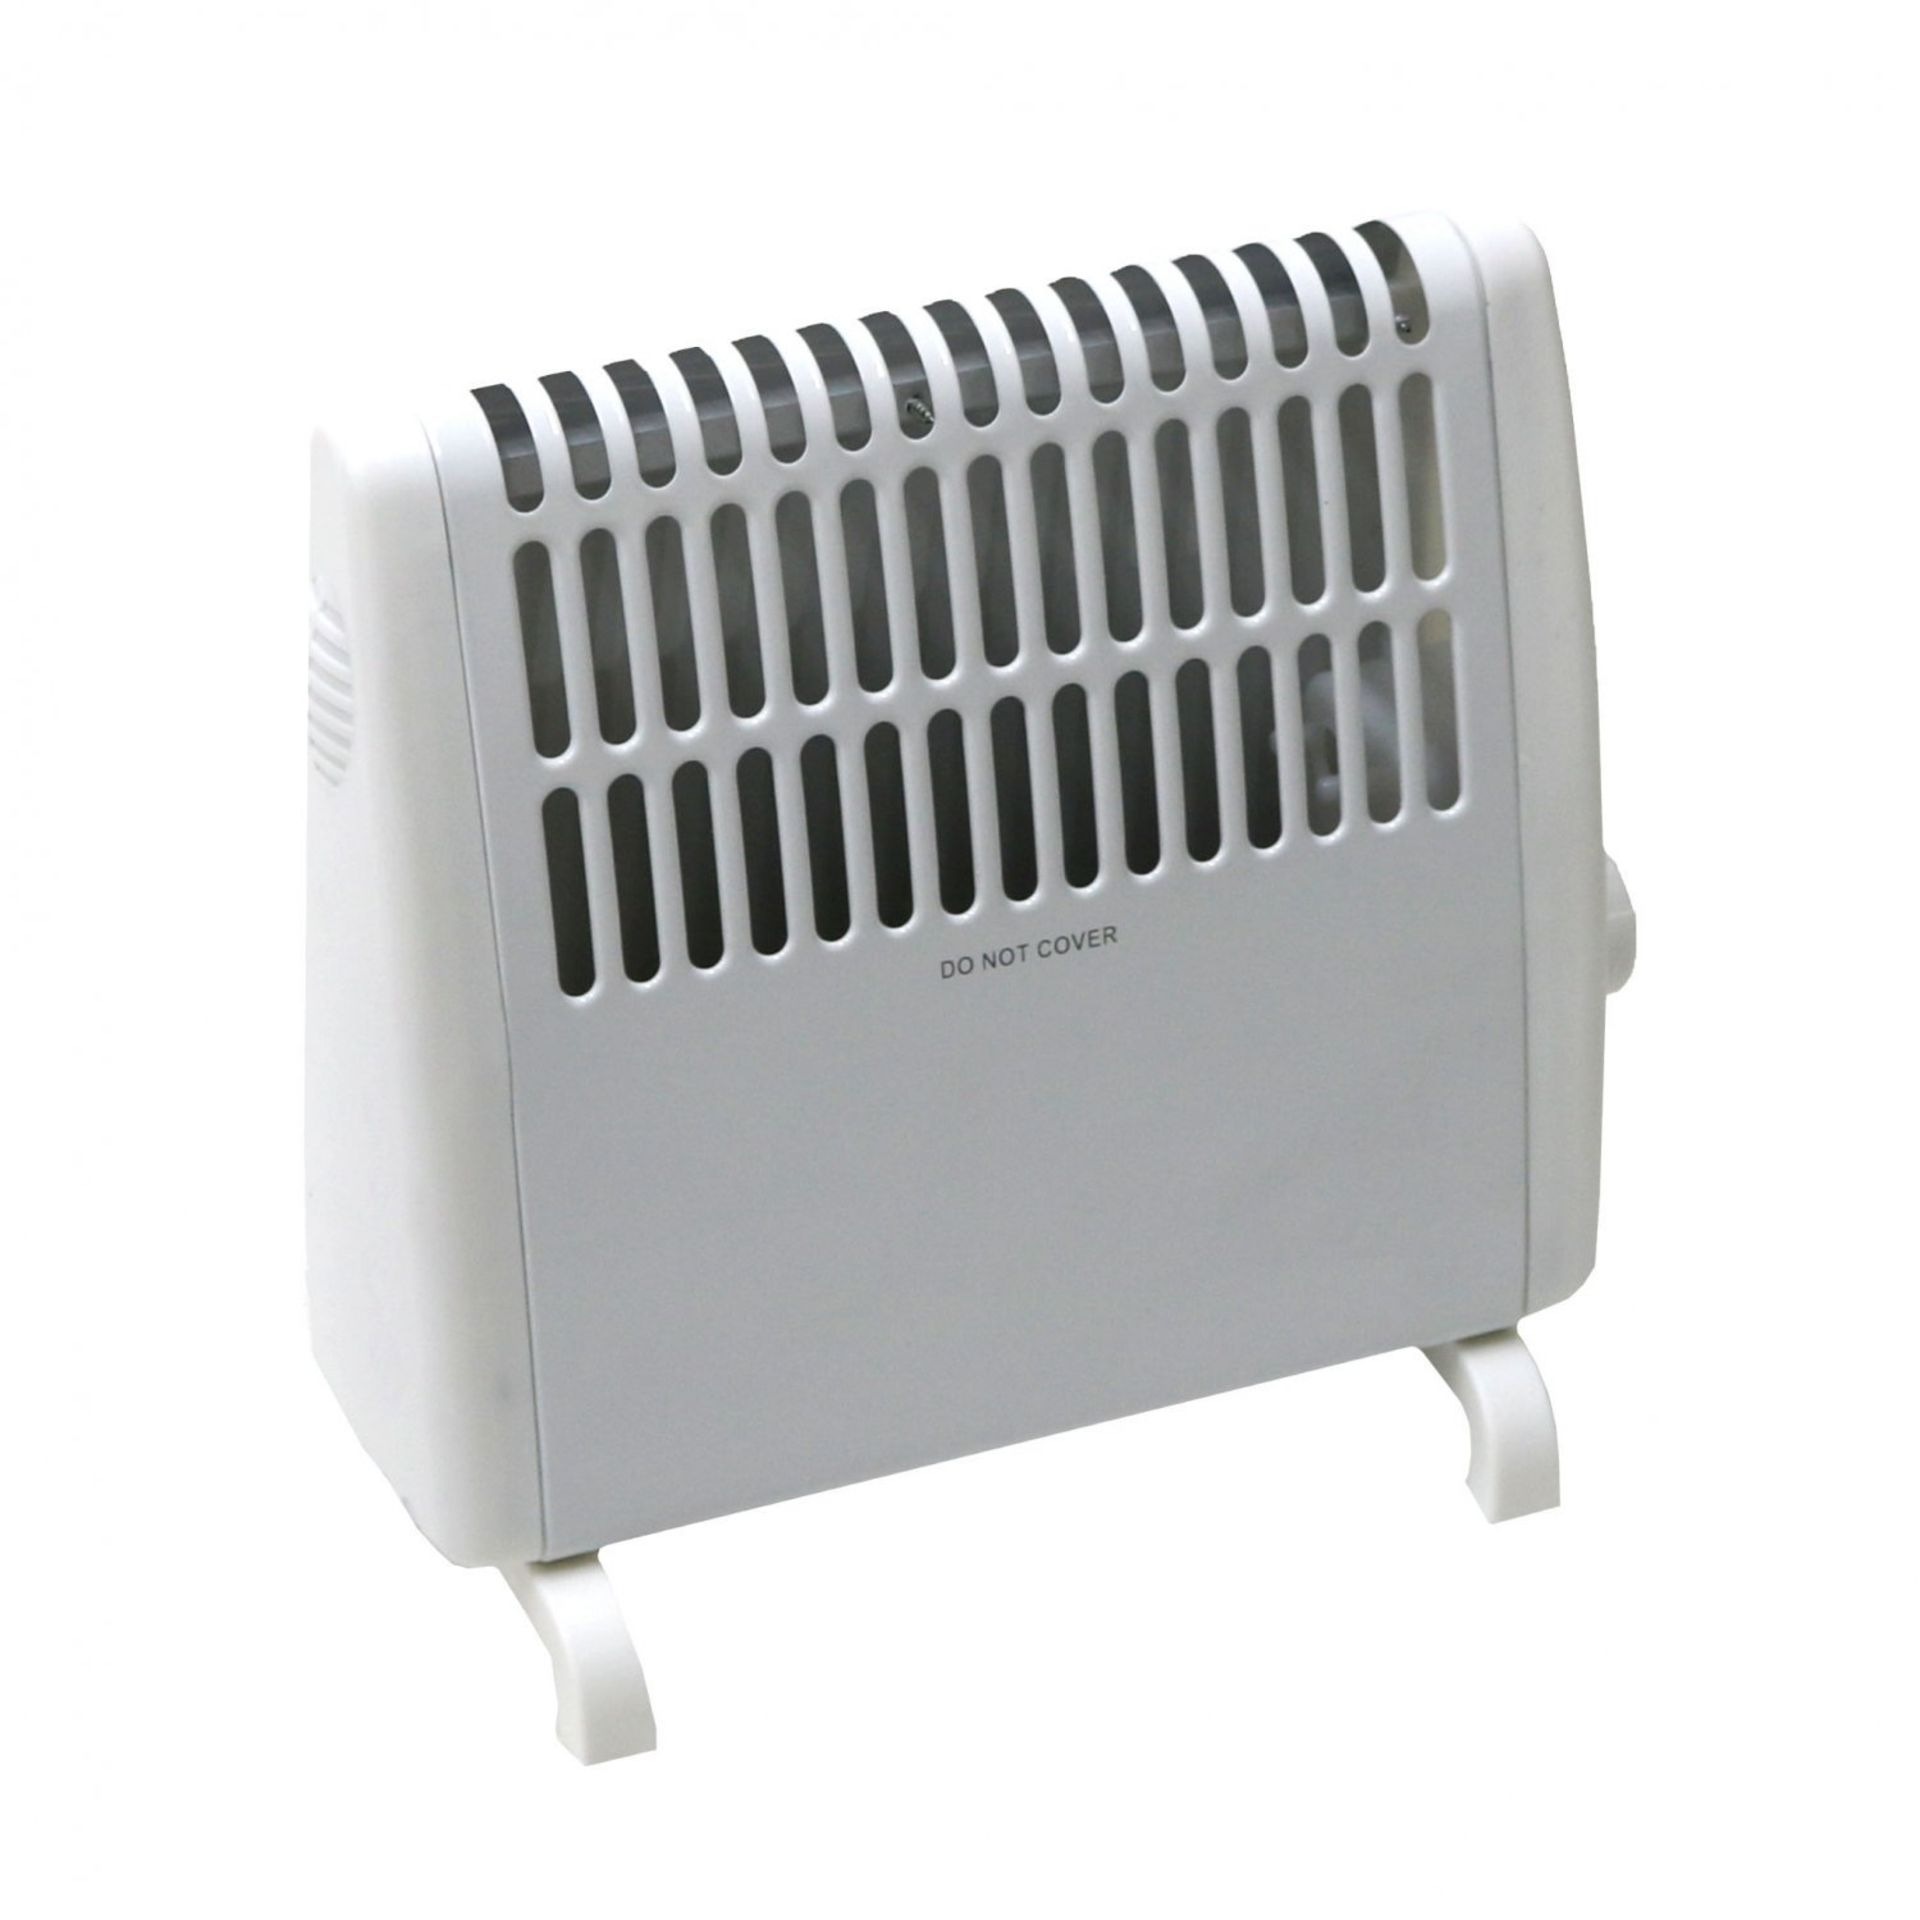 Lot 34 - (RU25) 450W Frost Electric Convector Heater Free Standing. 450W Frost Electric Convector Heater...